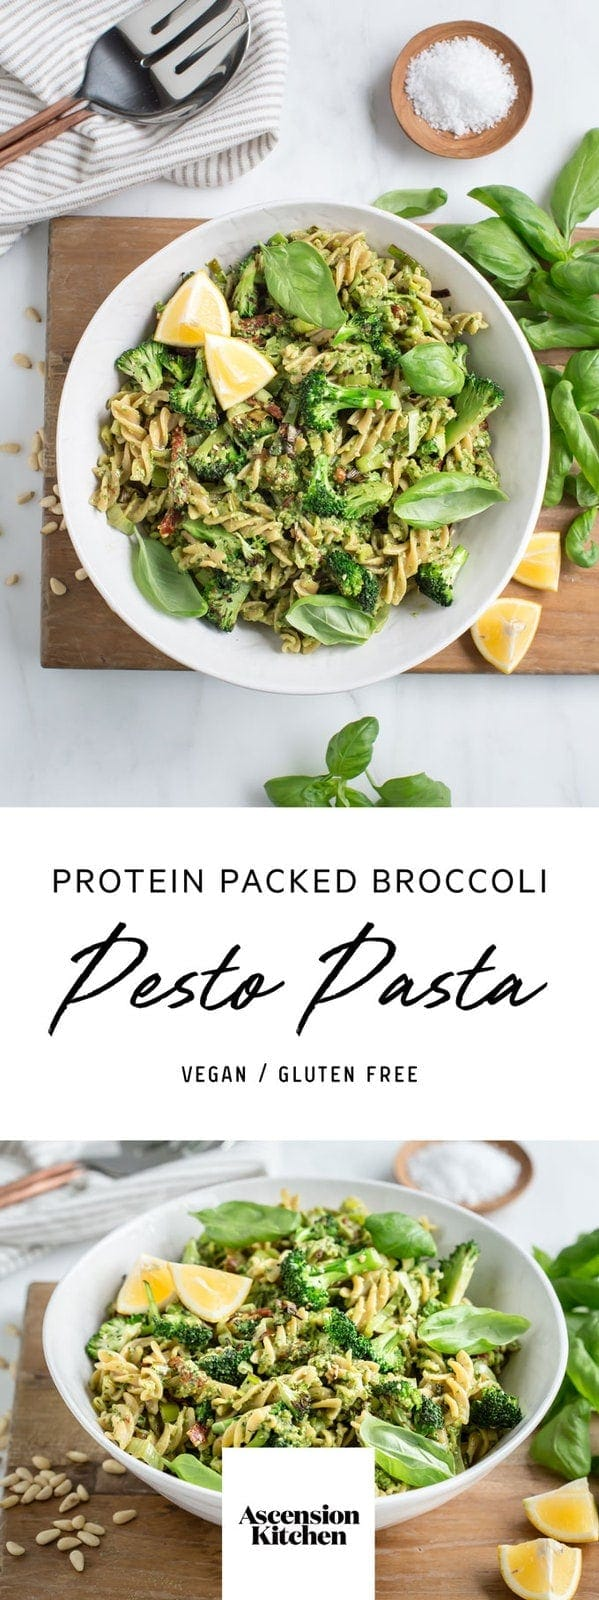 Vegan Broccoli Pesto Pasta – packed with protein, using chickpea fusilli. #broccolipestopasta #broccolipestopastavegan #legumepastarecipe #chickpeapastarecipe #broccolipestopastarecipes #veganpesto #veganpestorecipe #dairyfreepesto #AscensionKitchen // Pin to your own inspiration board! //